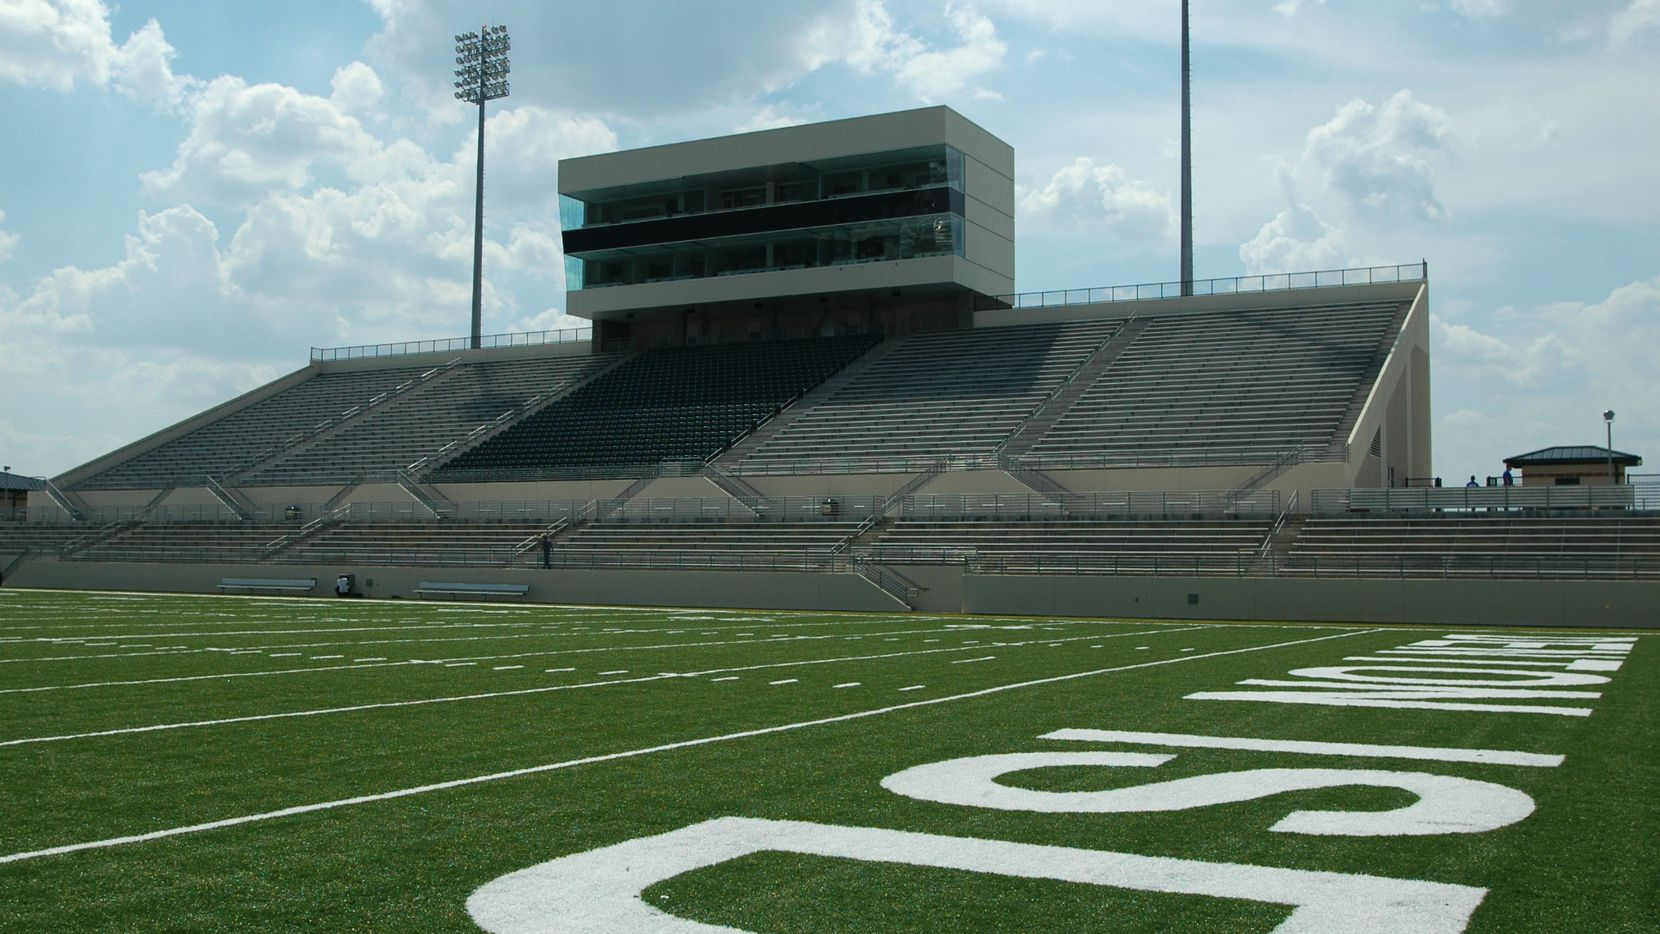 The comments were reportedly directed at Mansfield Lake Ridge's football team, band, drill team, color guard and cheerleading squad, according to parents whose children were at the game at Denton ISD stadium.